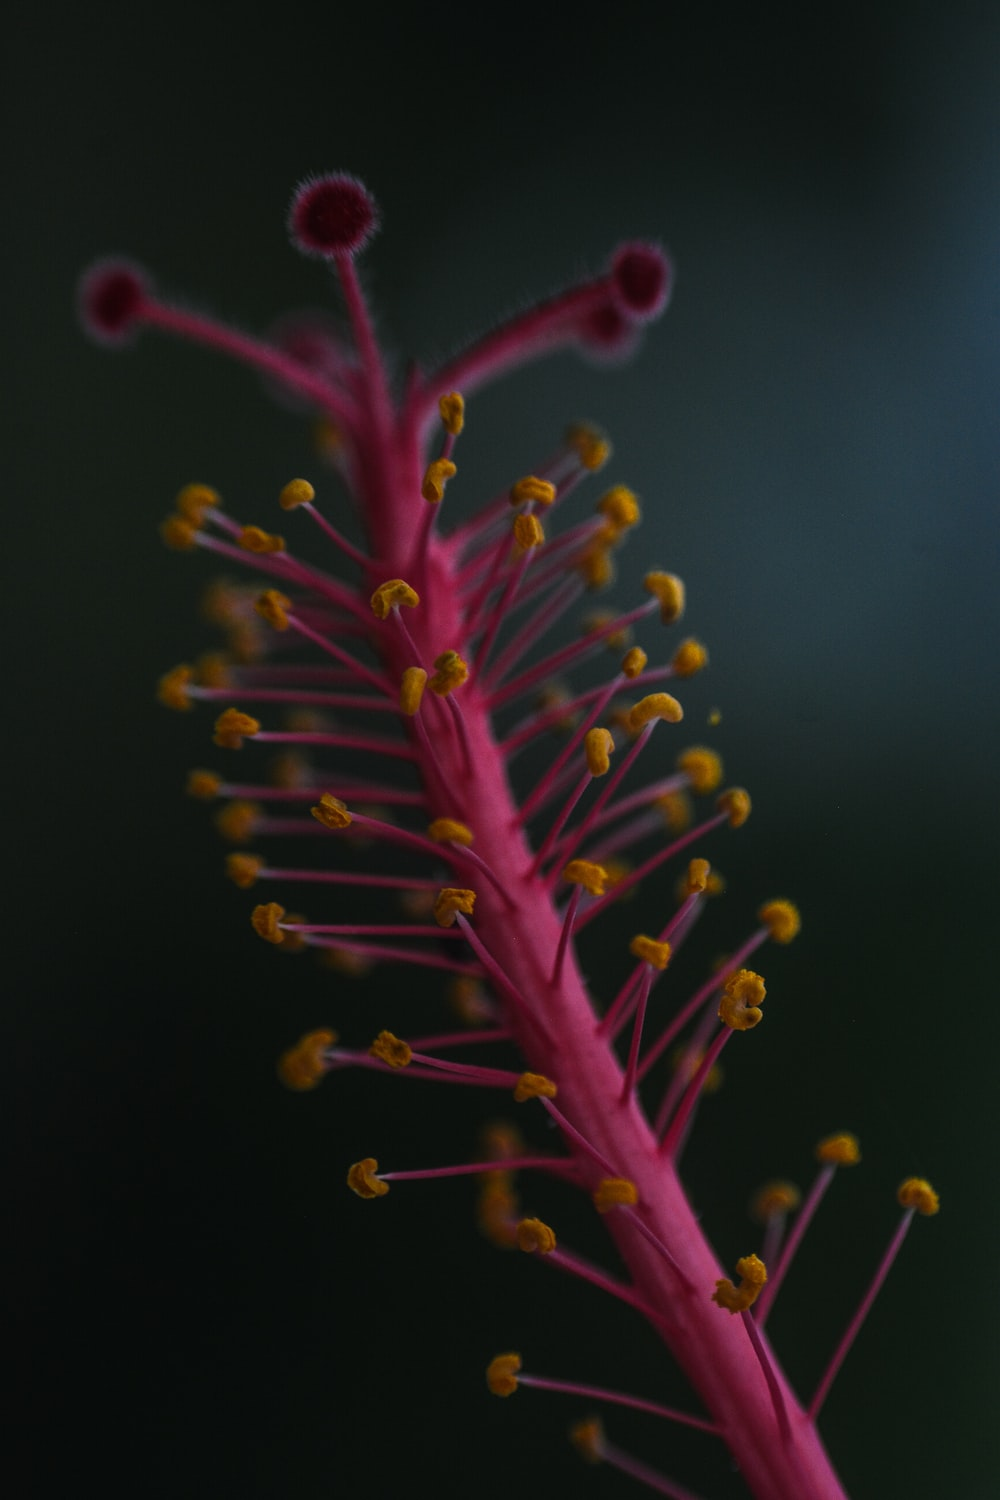 yellow and red plant in close up photography